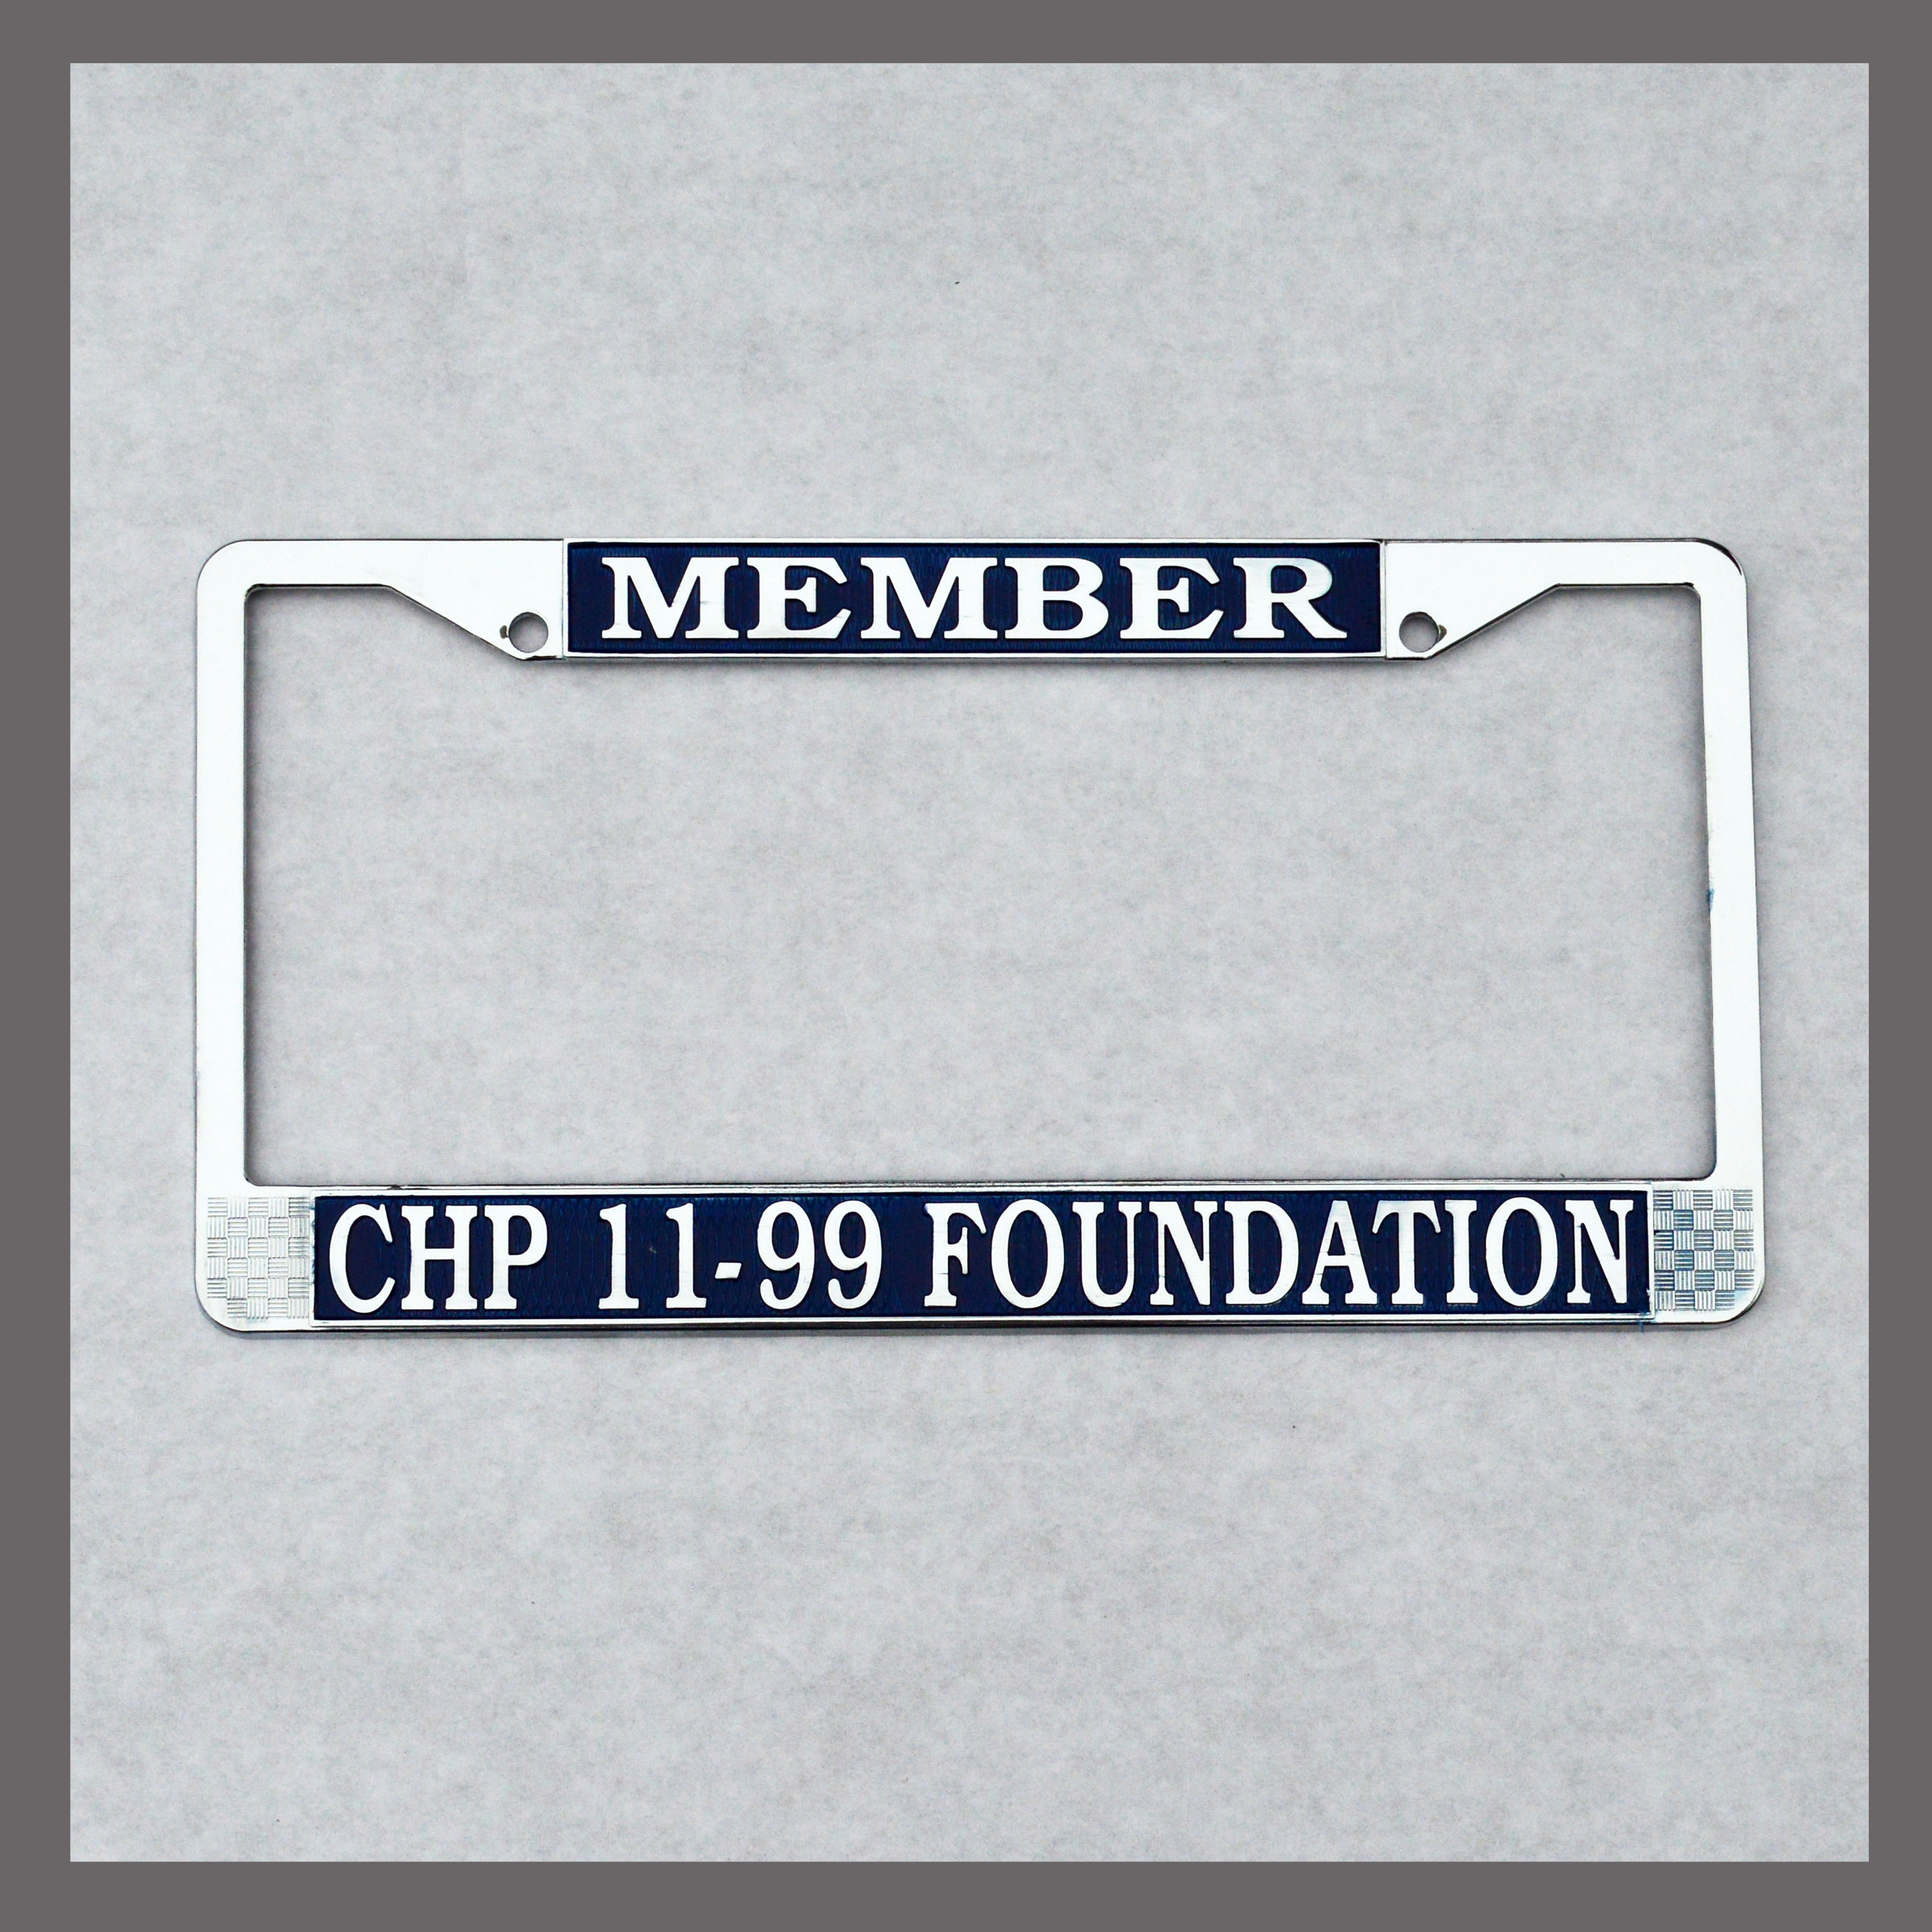 11-99 Foundation License Plate For Sale